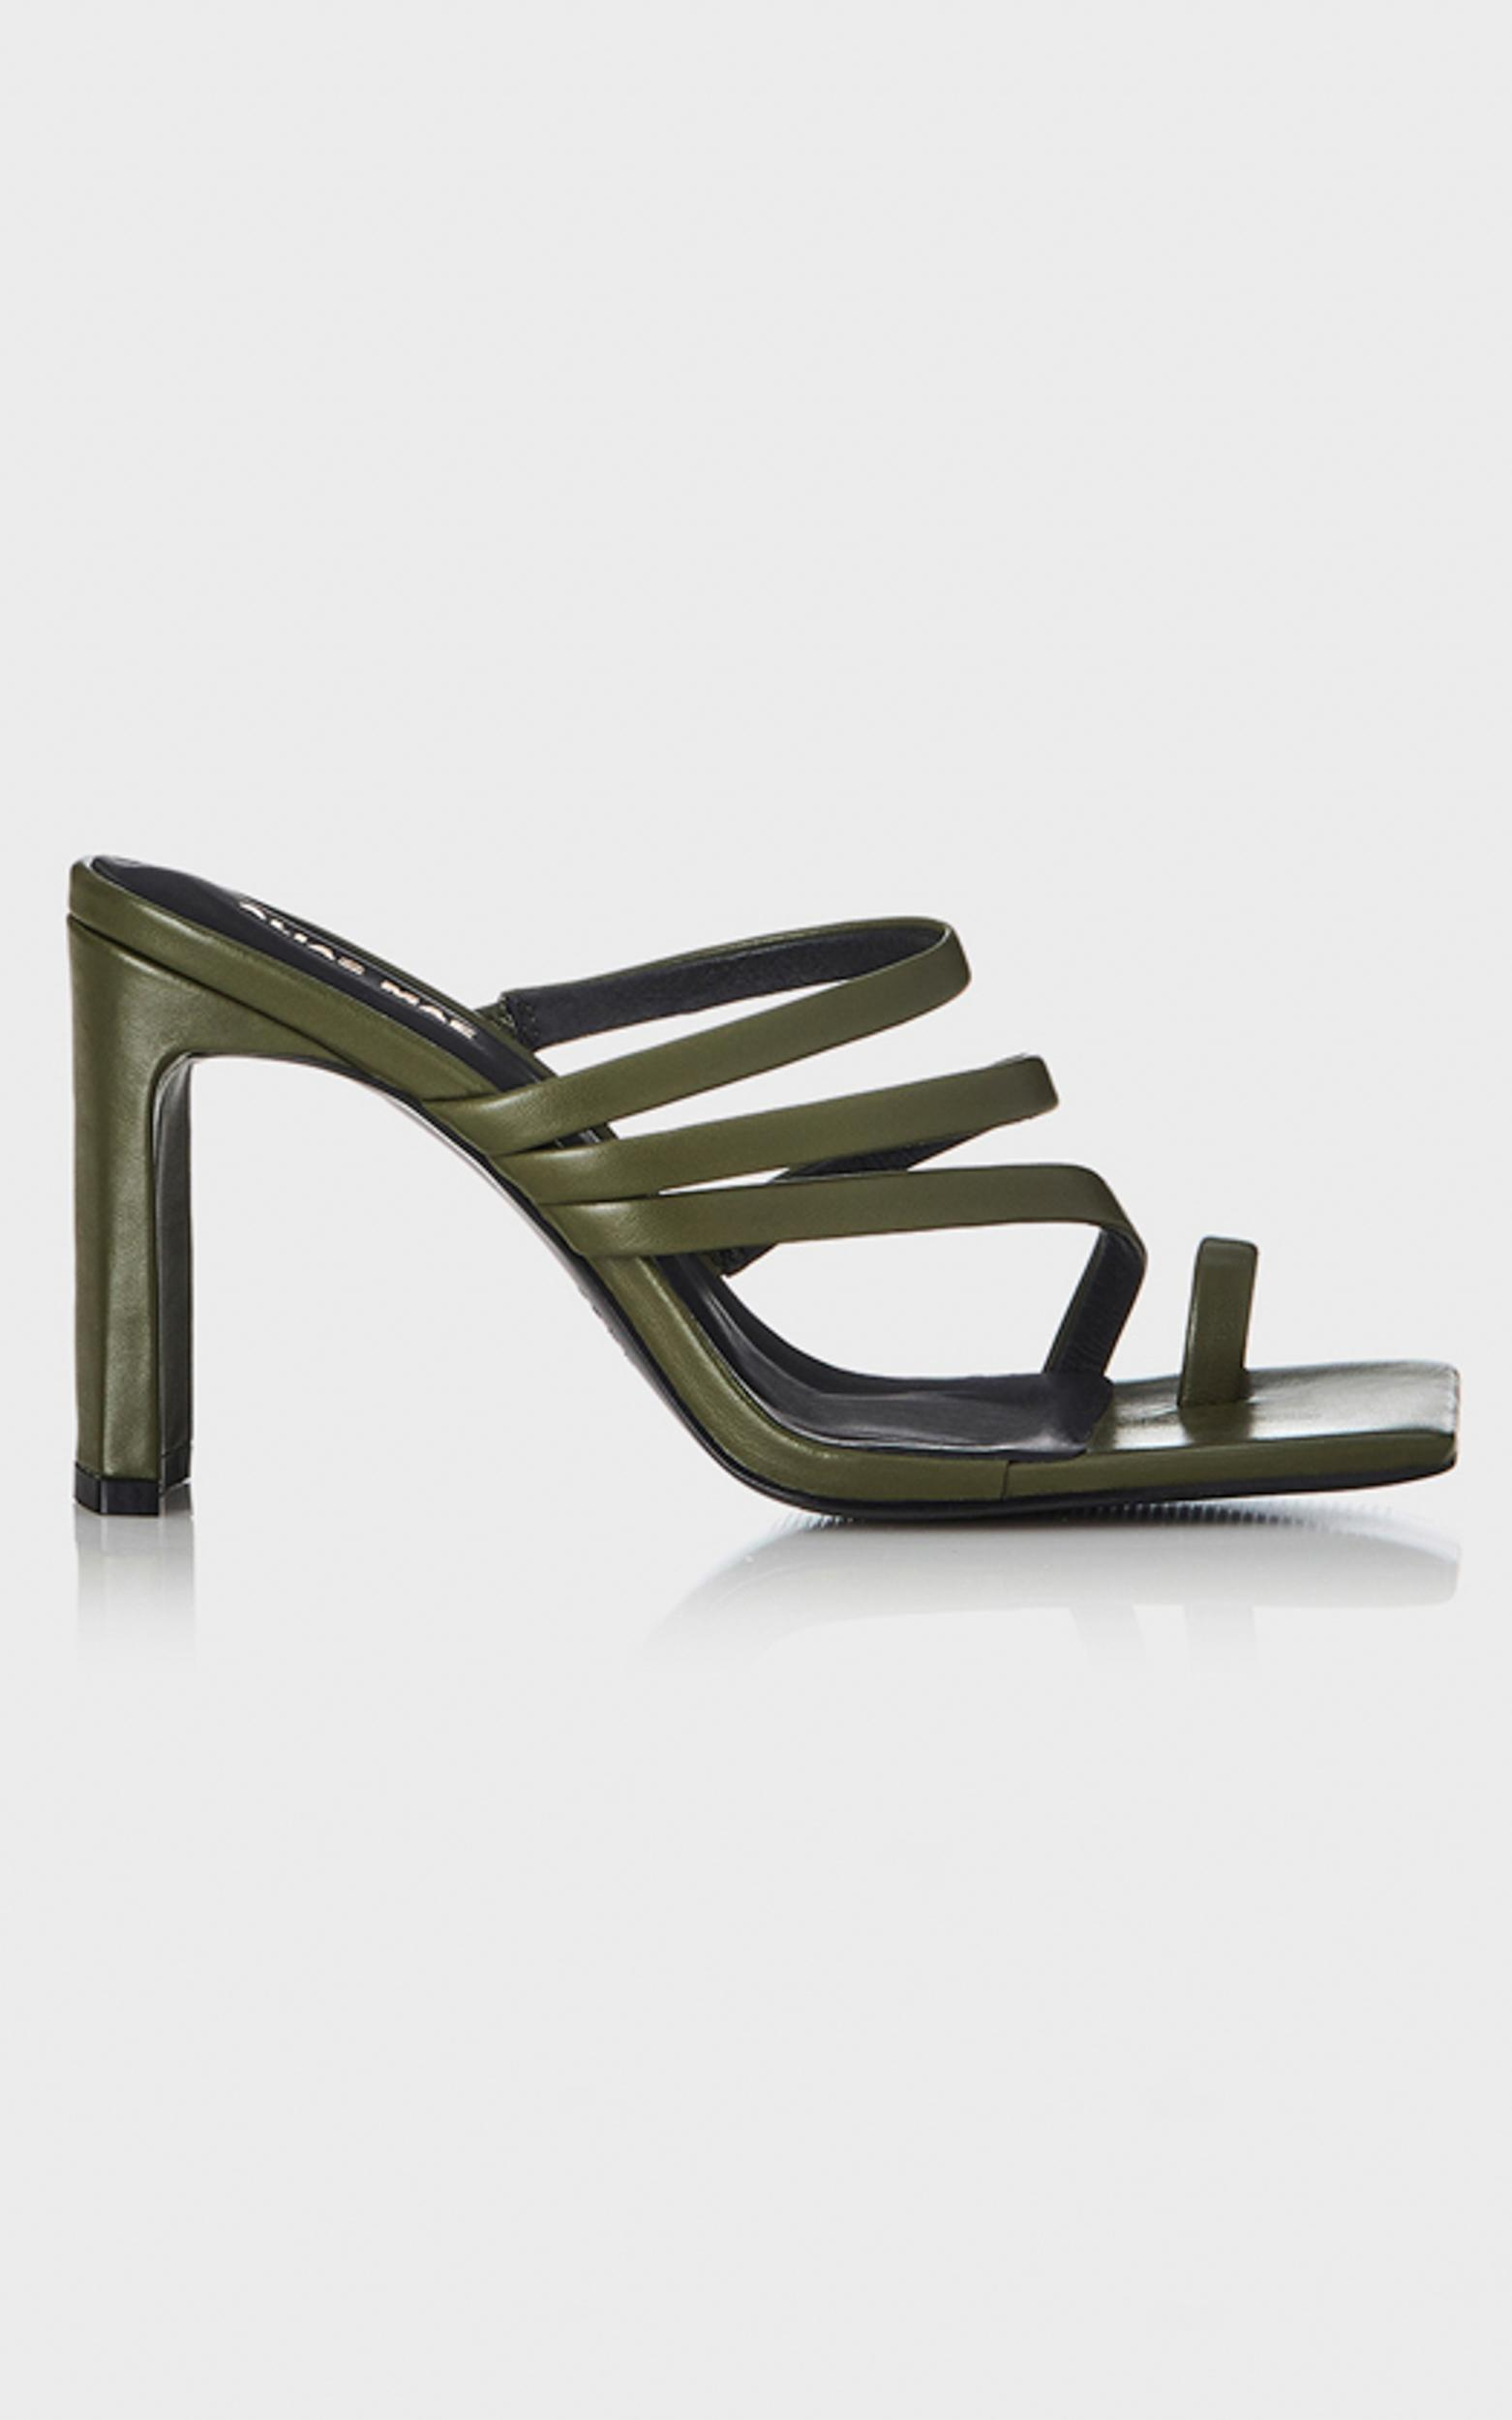 Alias Mae - Carrie Heels in Olive Leather - 5.5, Green, hi-res image number null